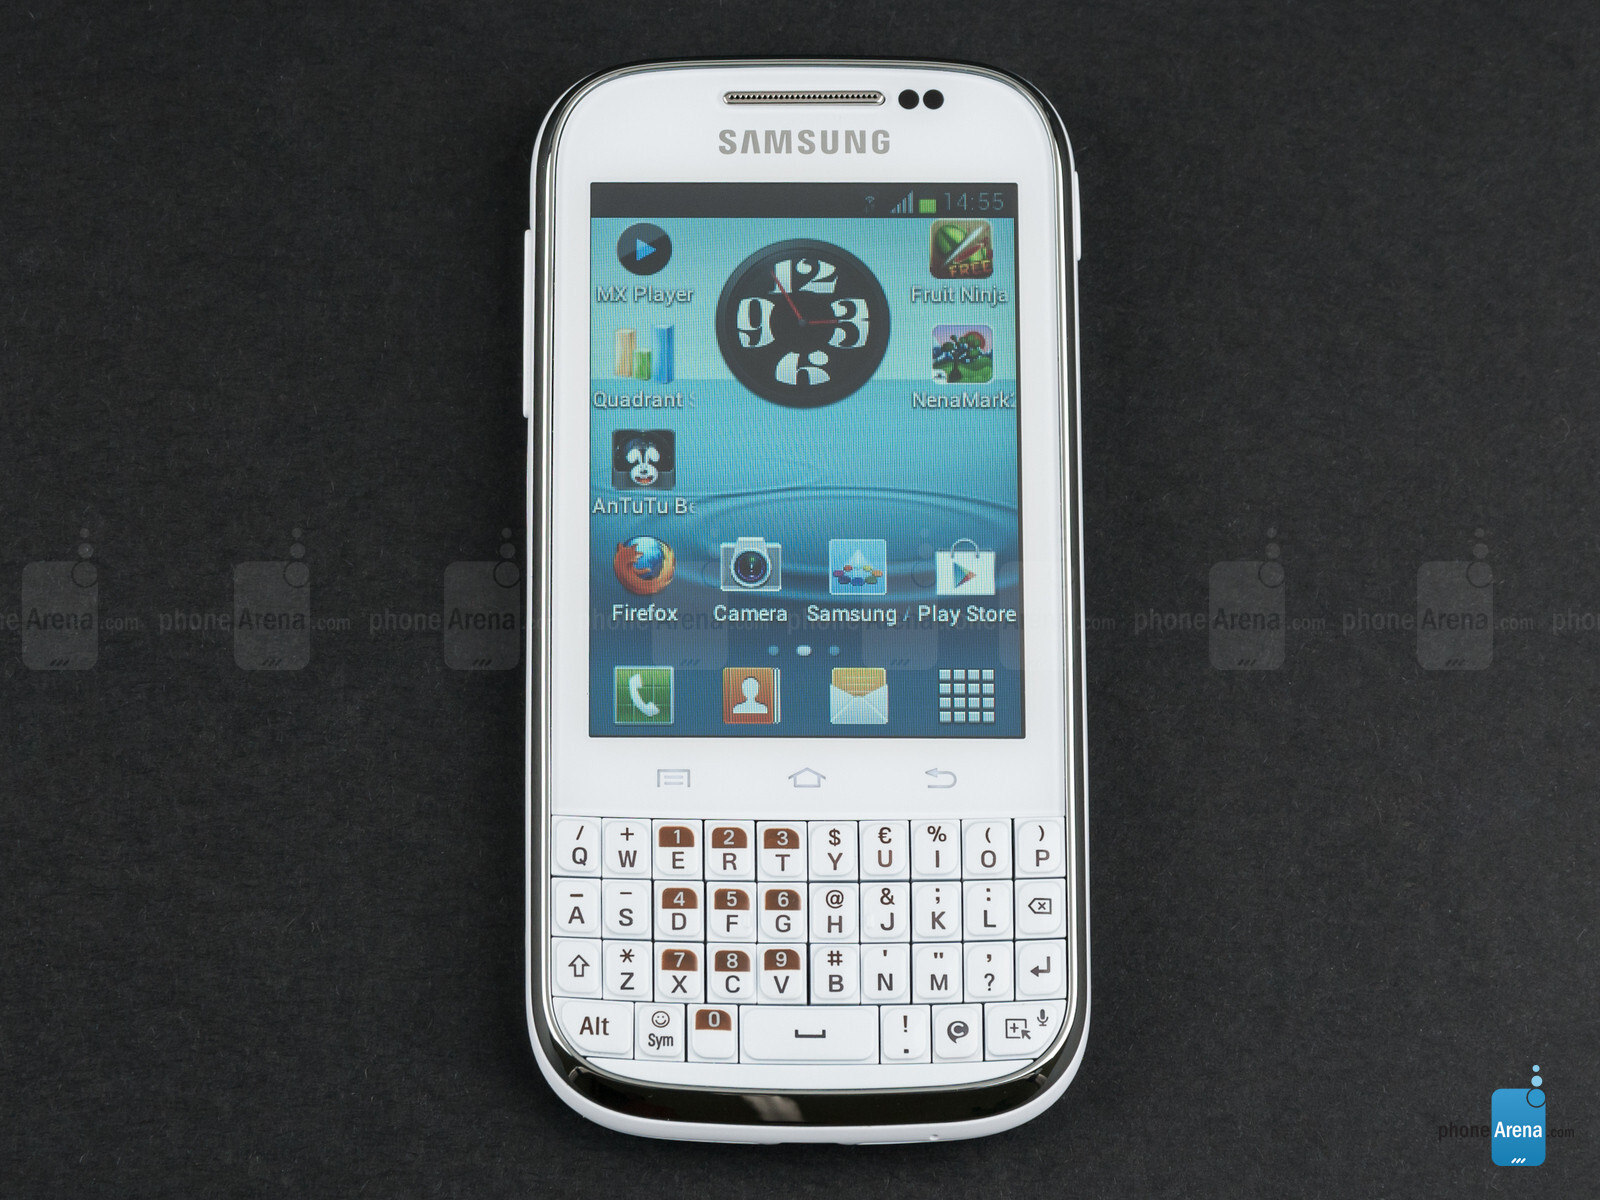 Samsung Galaxy Chat · View All